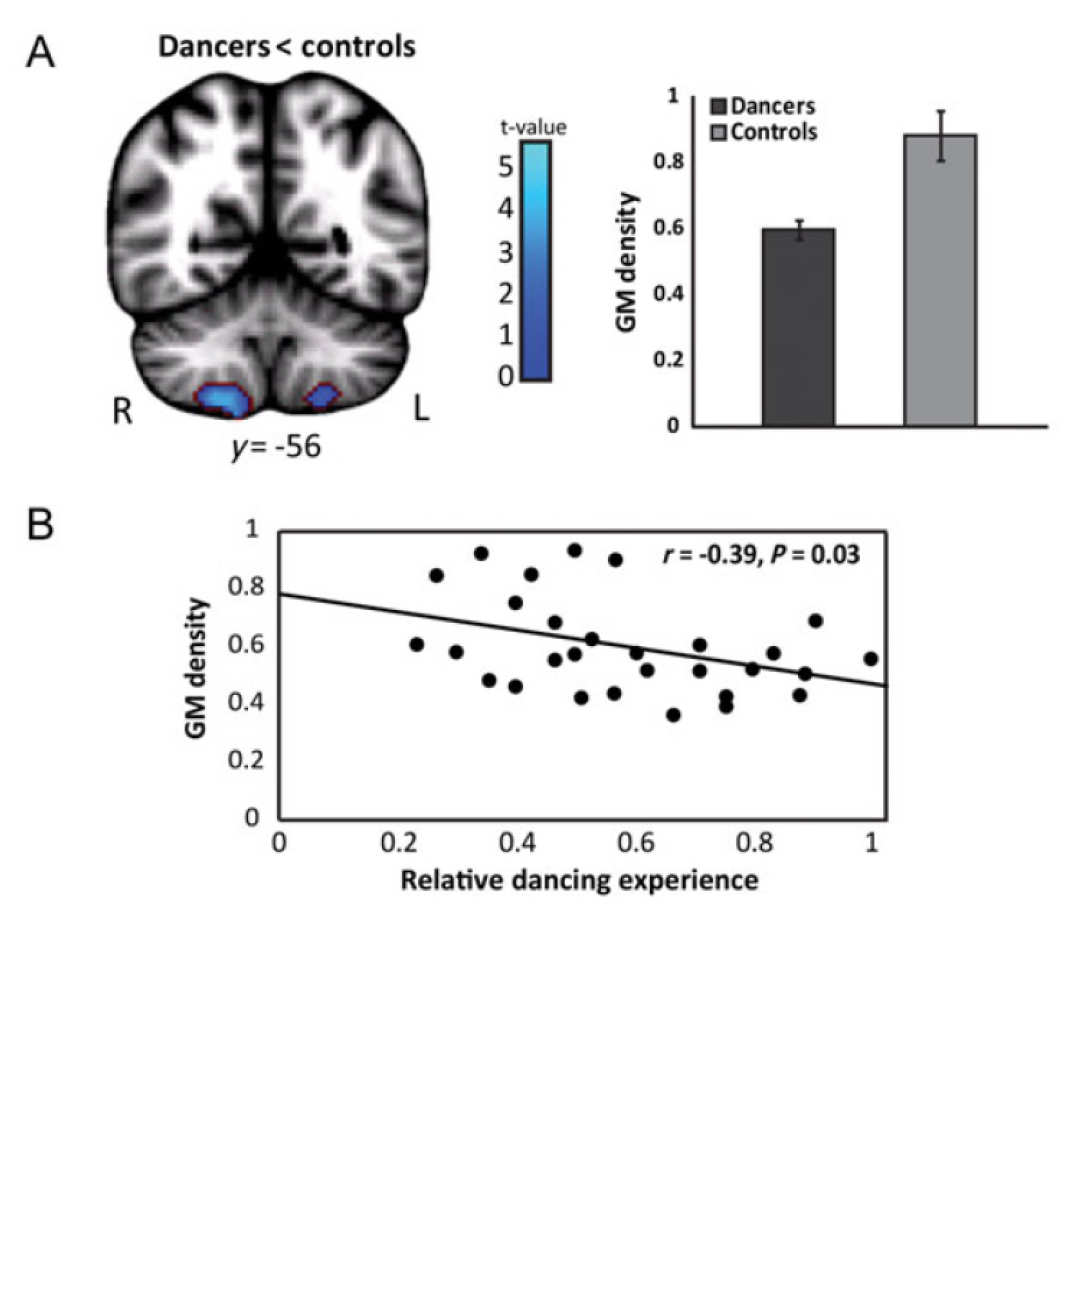 A - Adaptation in the Cerebellar Grey matter mediates dizziness suppression in ballet dancers. B - The adaptation scales with ballet experience.